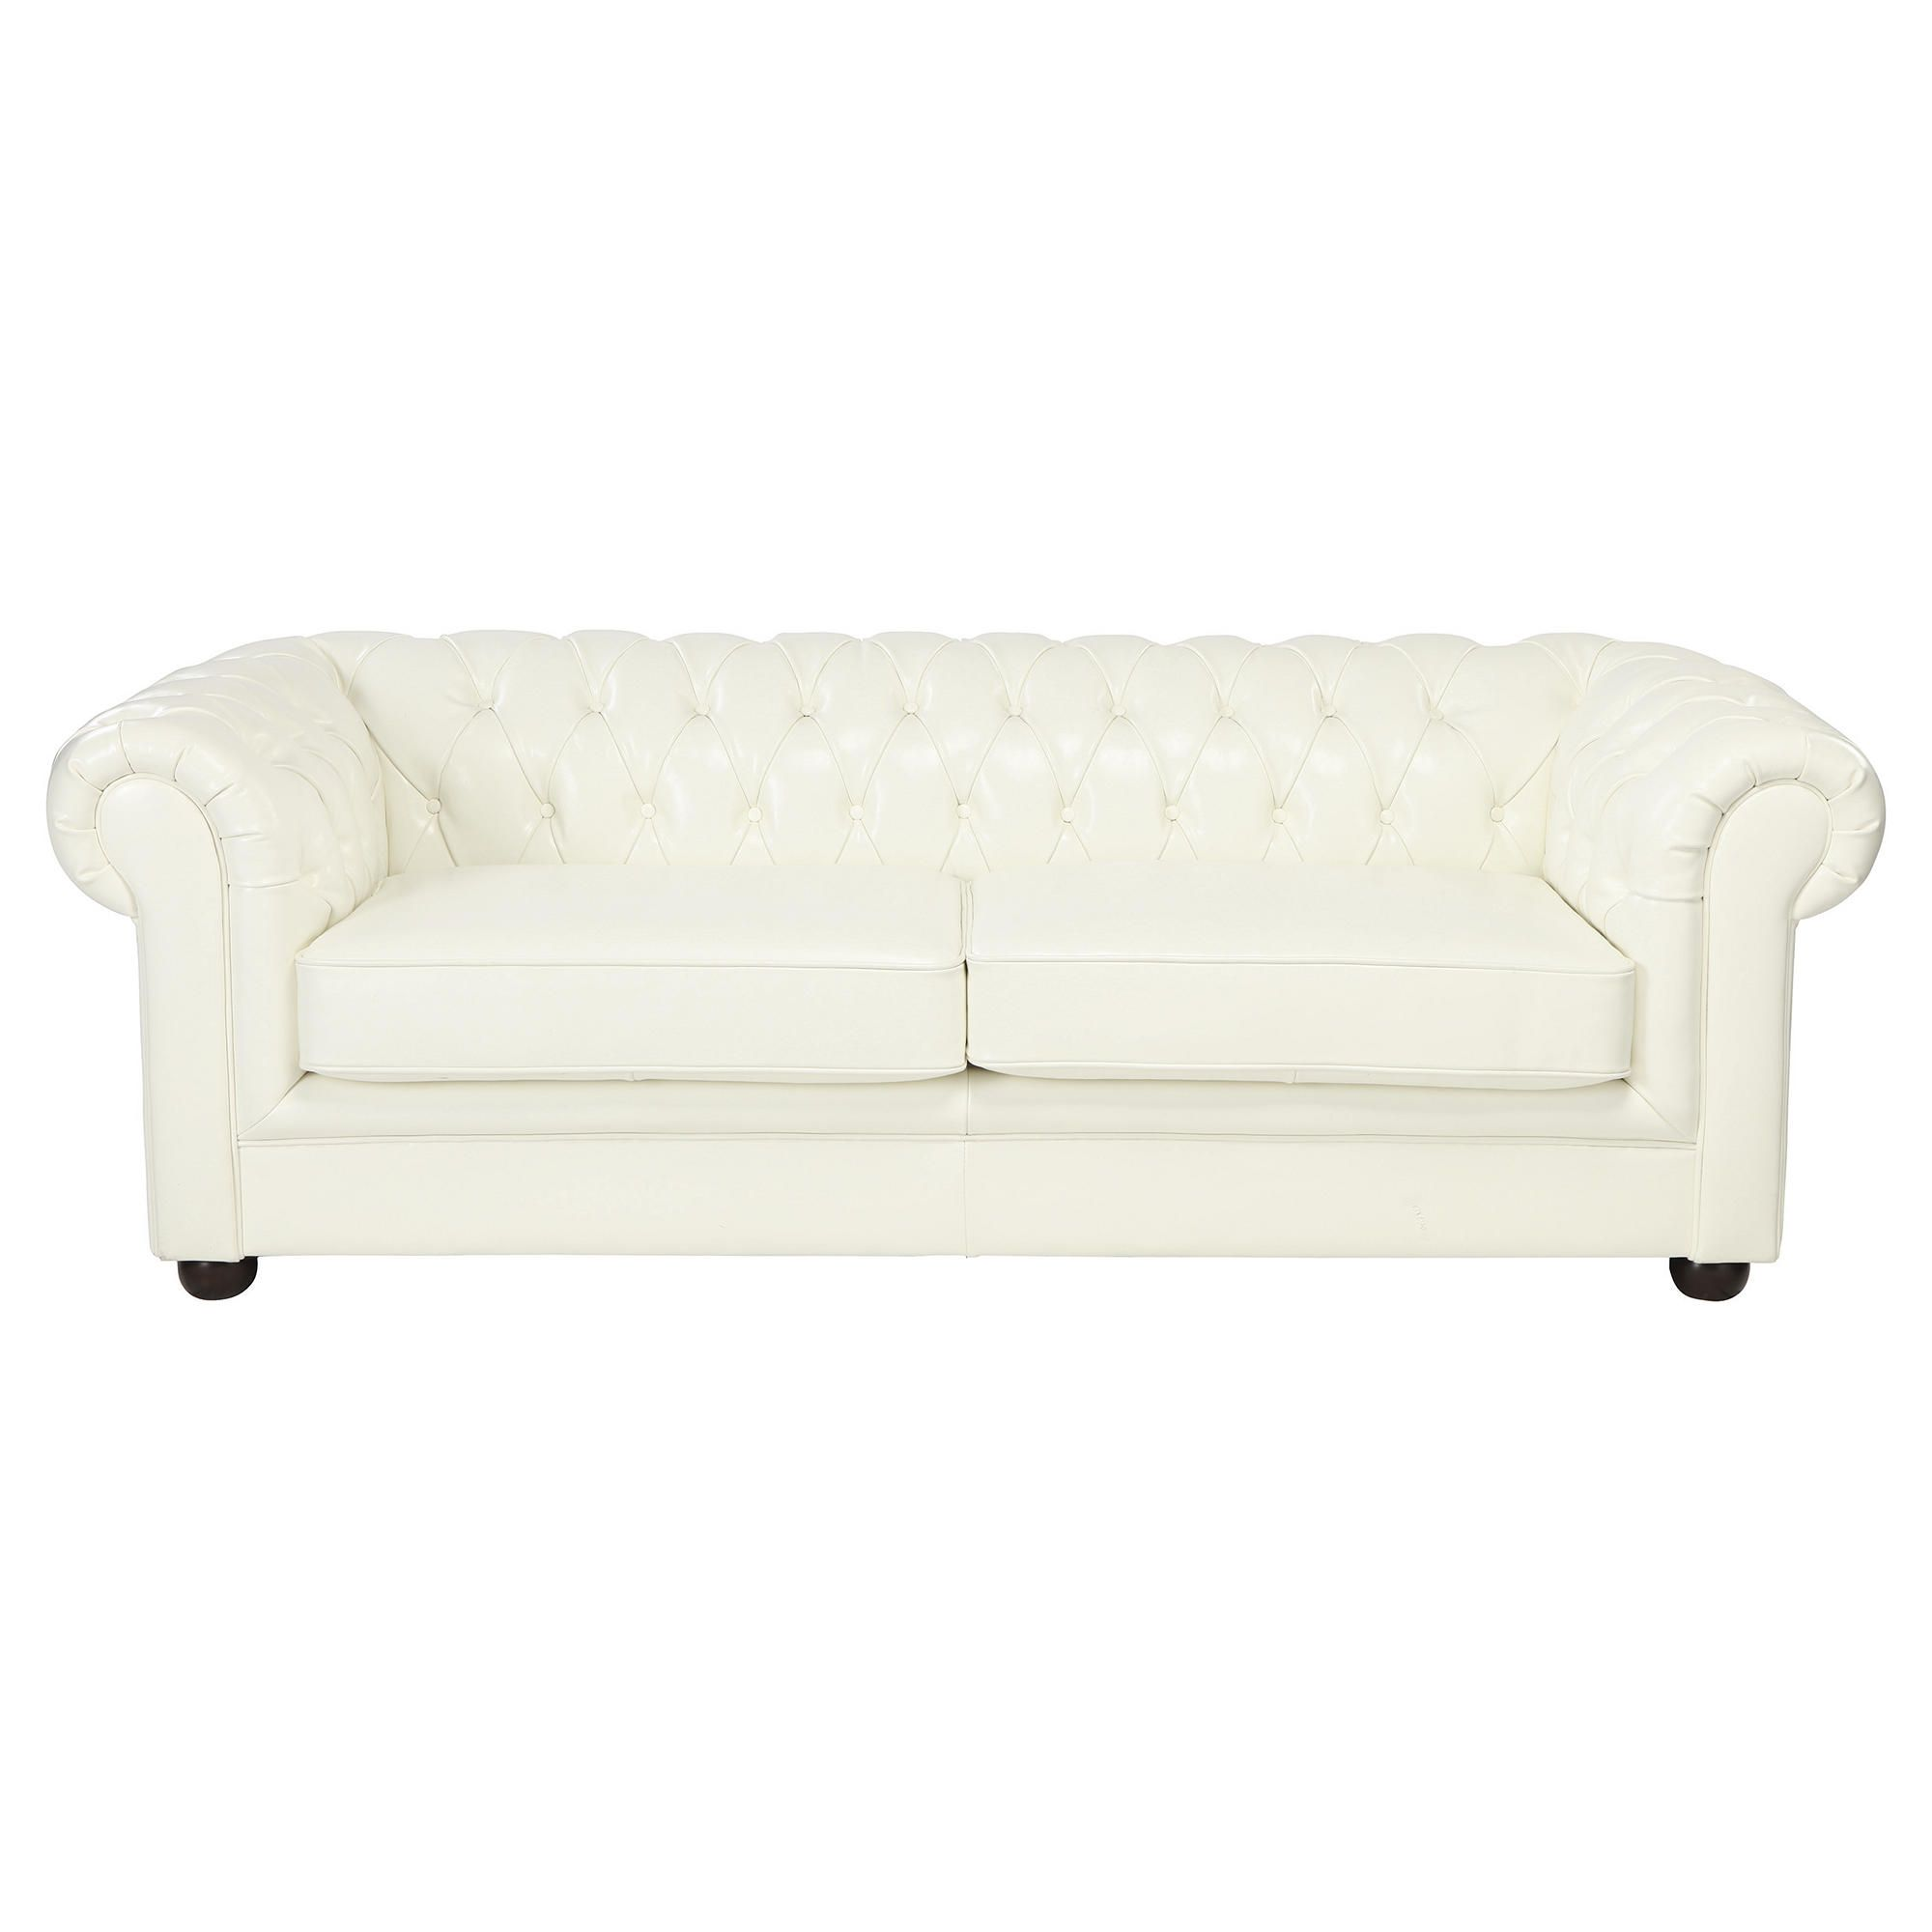 Chesterfield Large Leather Sofa, White at Tesco Direct